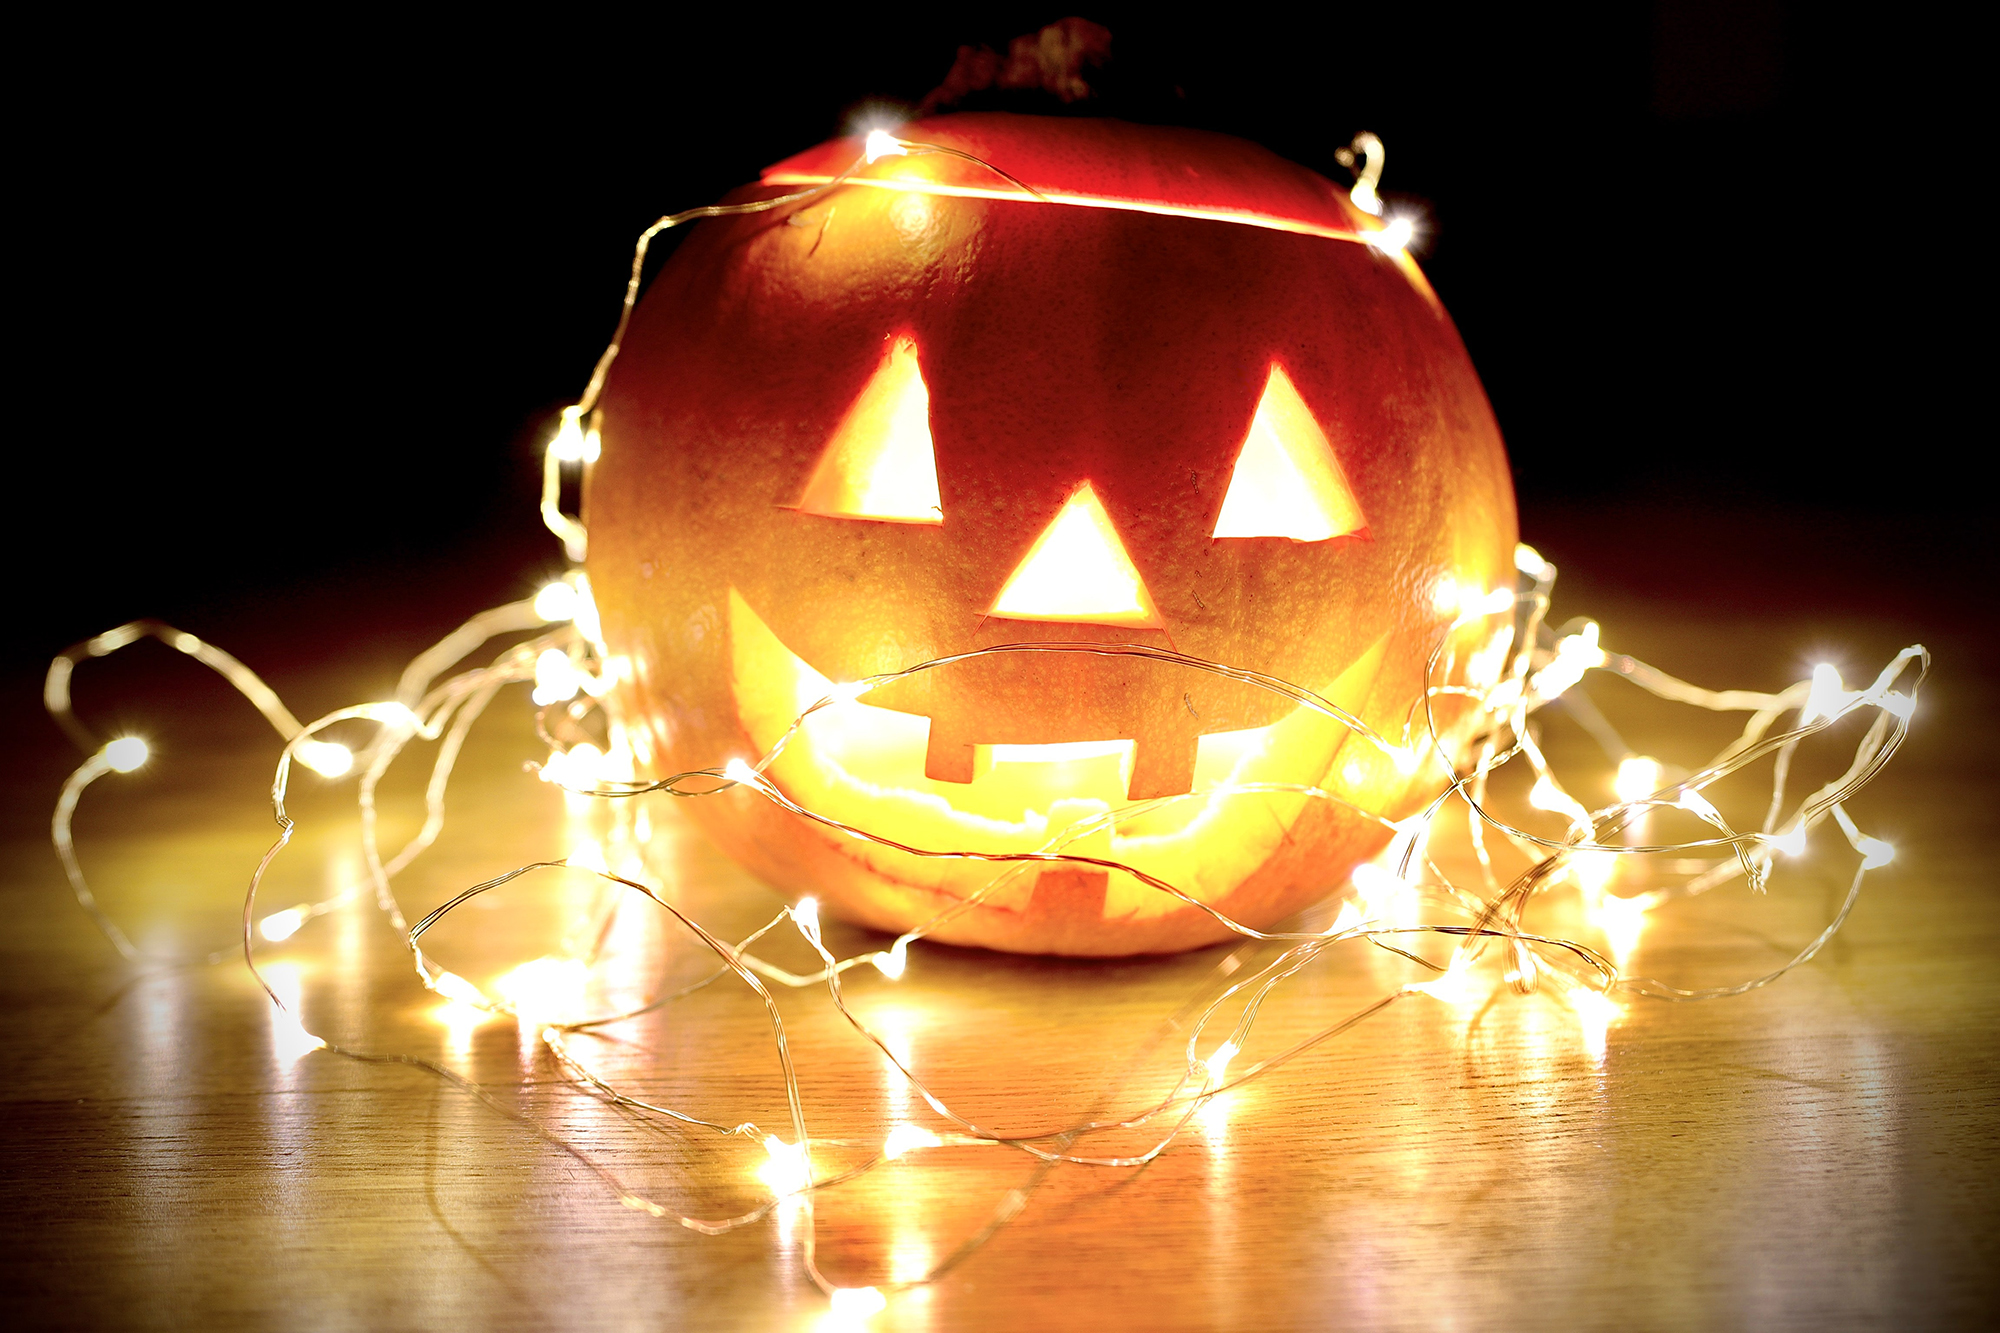 A Halloween jack-o-lantern with a smiling face and tangled in twinkling lights.